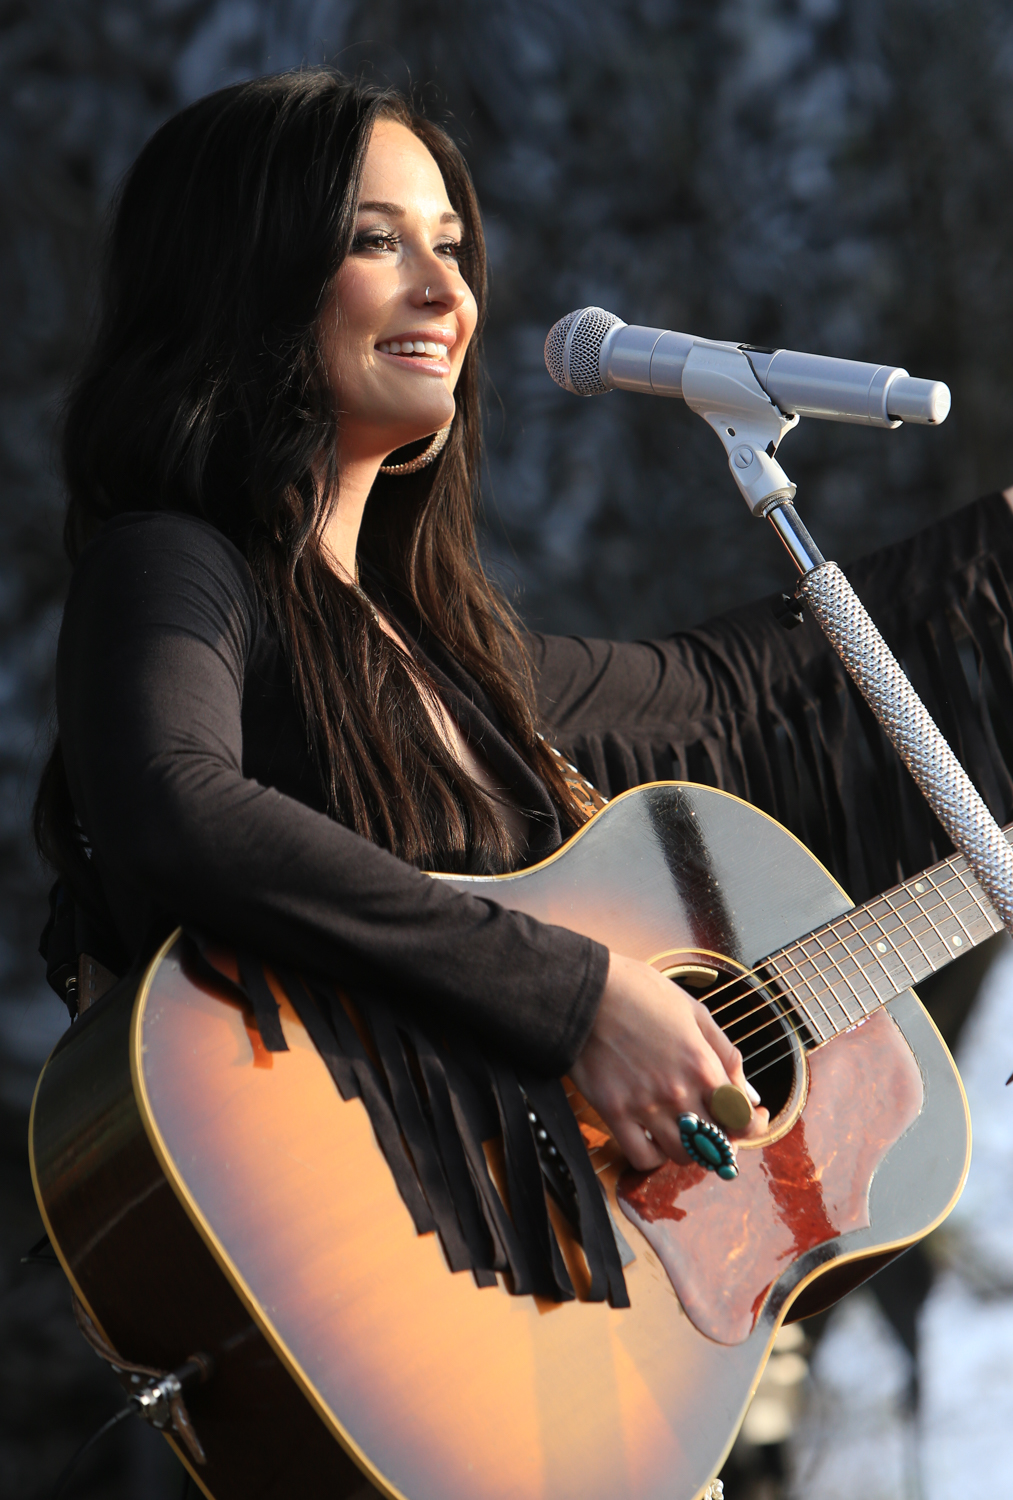 Kacey Musgraves performs  at the Spotify House @SXSW2016 photo: Anna Webber/Gettyimages for Spotify